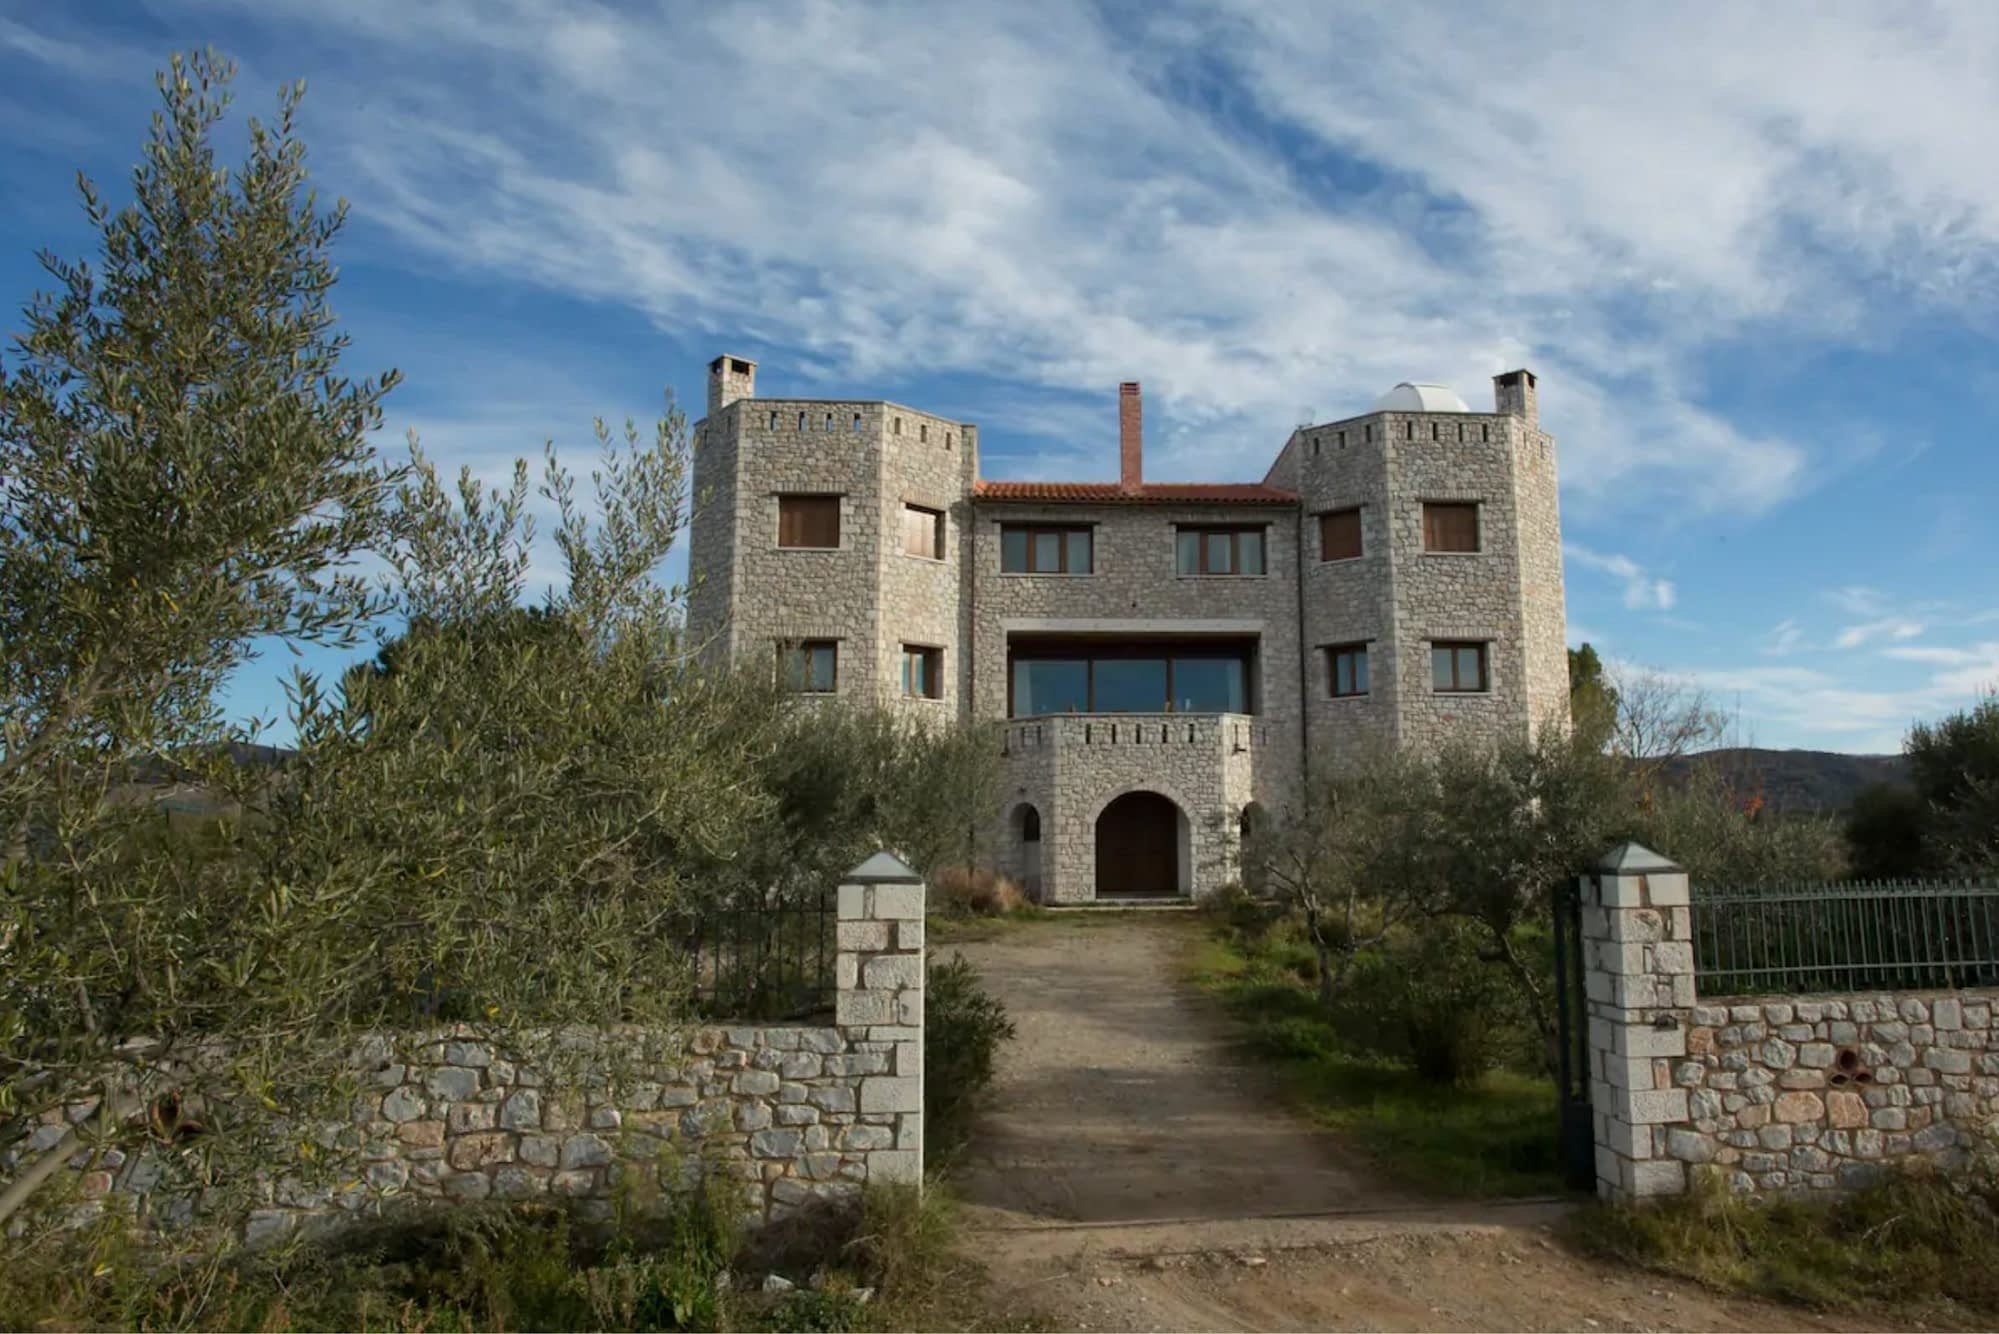 Recording in this beautiful castle close to Sparta - view castle front | Hit The Road Music Studio | Mobile Recording Studio